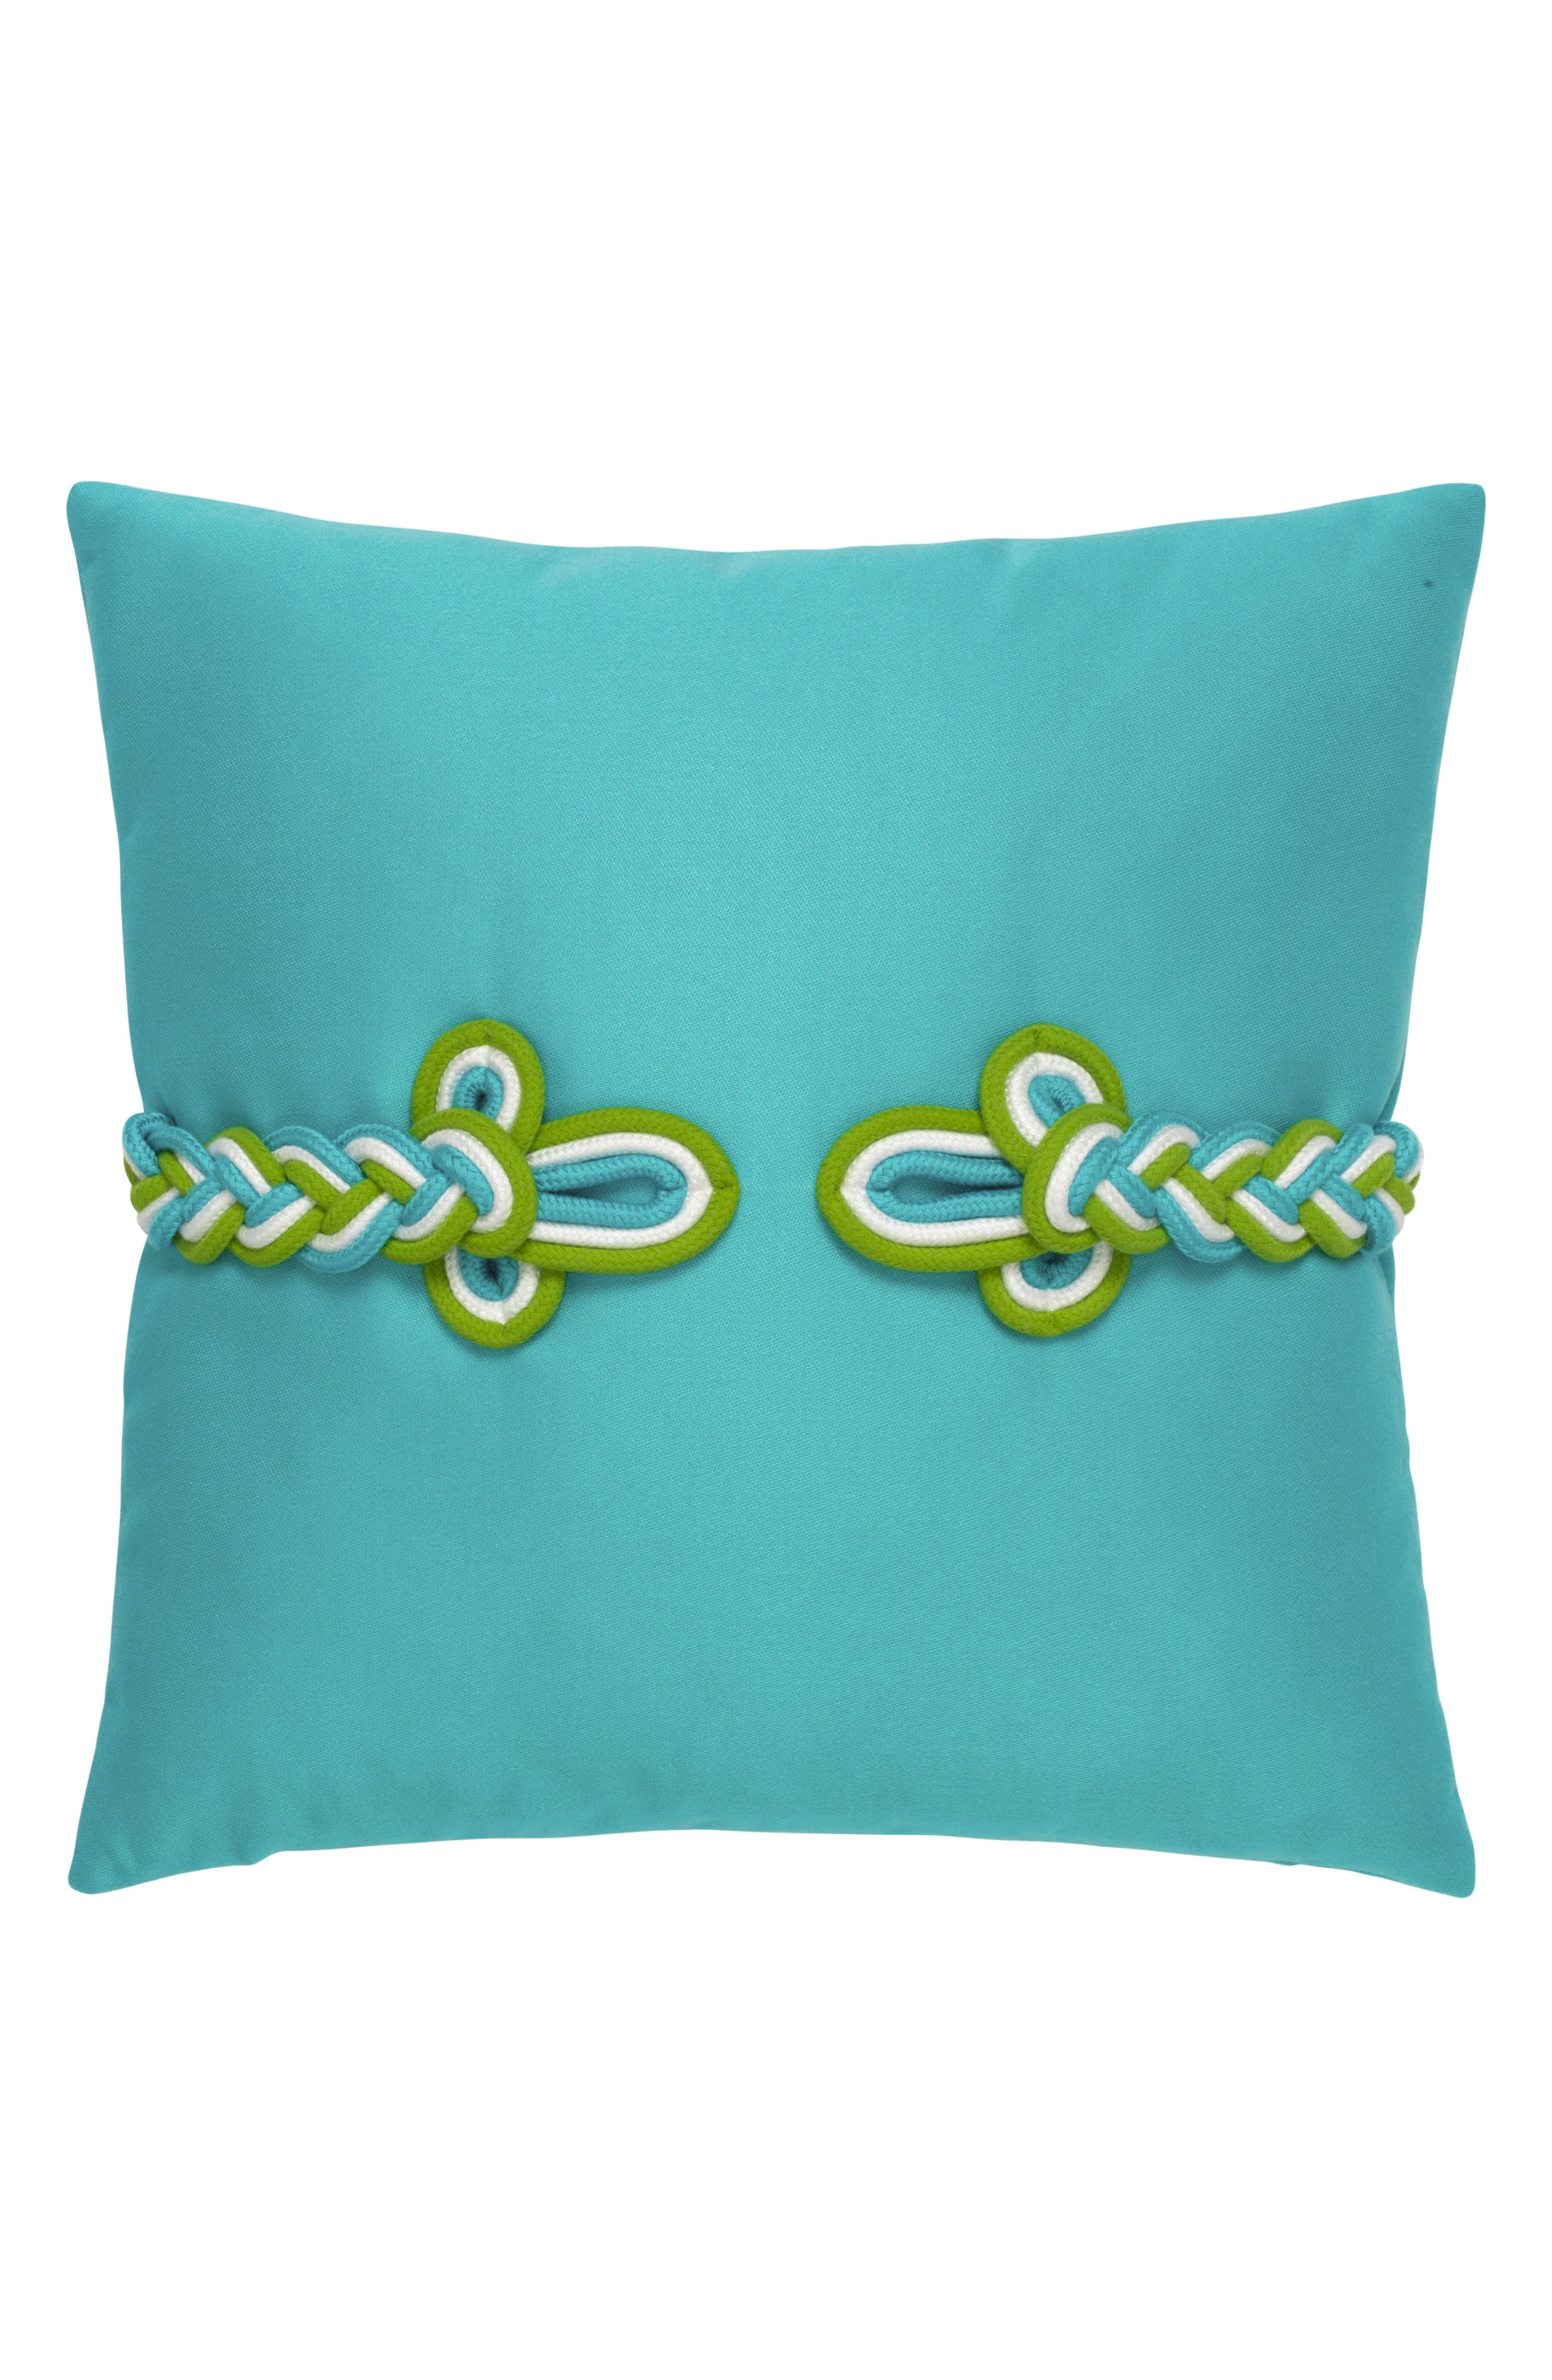 Aruba Frogs Clasp Indoor/Outdoor Accent Pillow,                             Main thumbnail 1, color,                             Blue